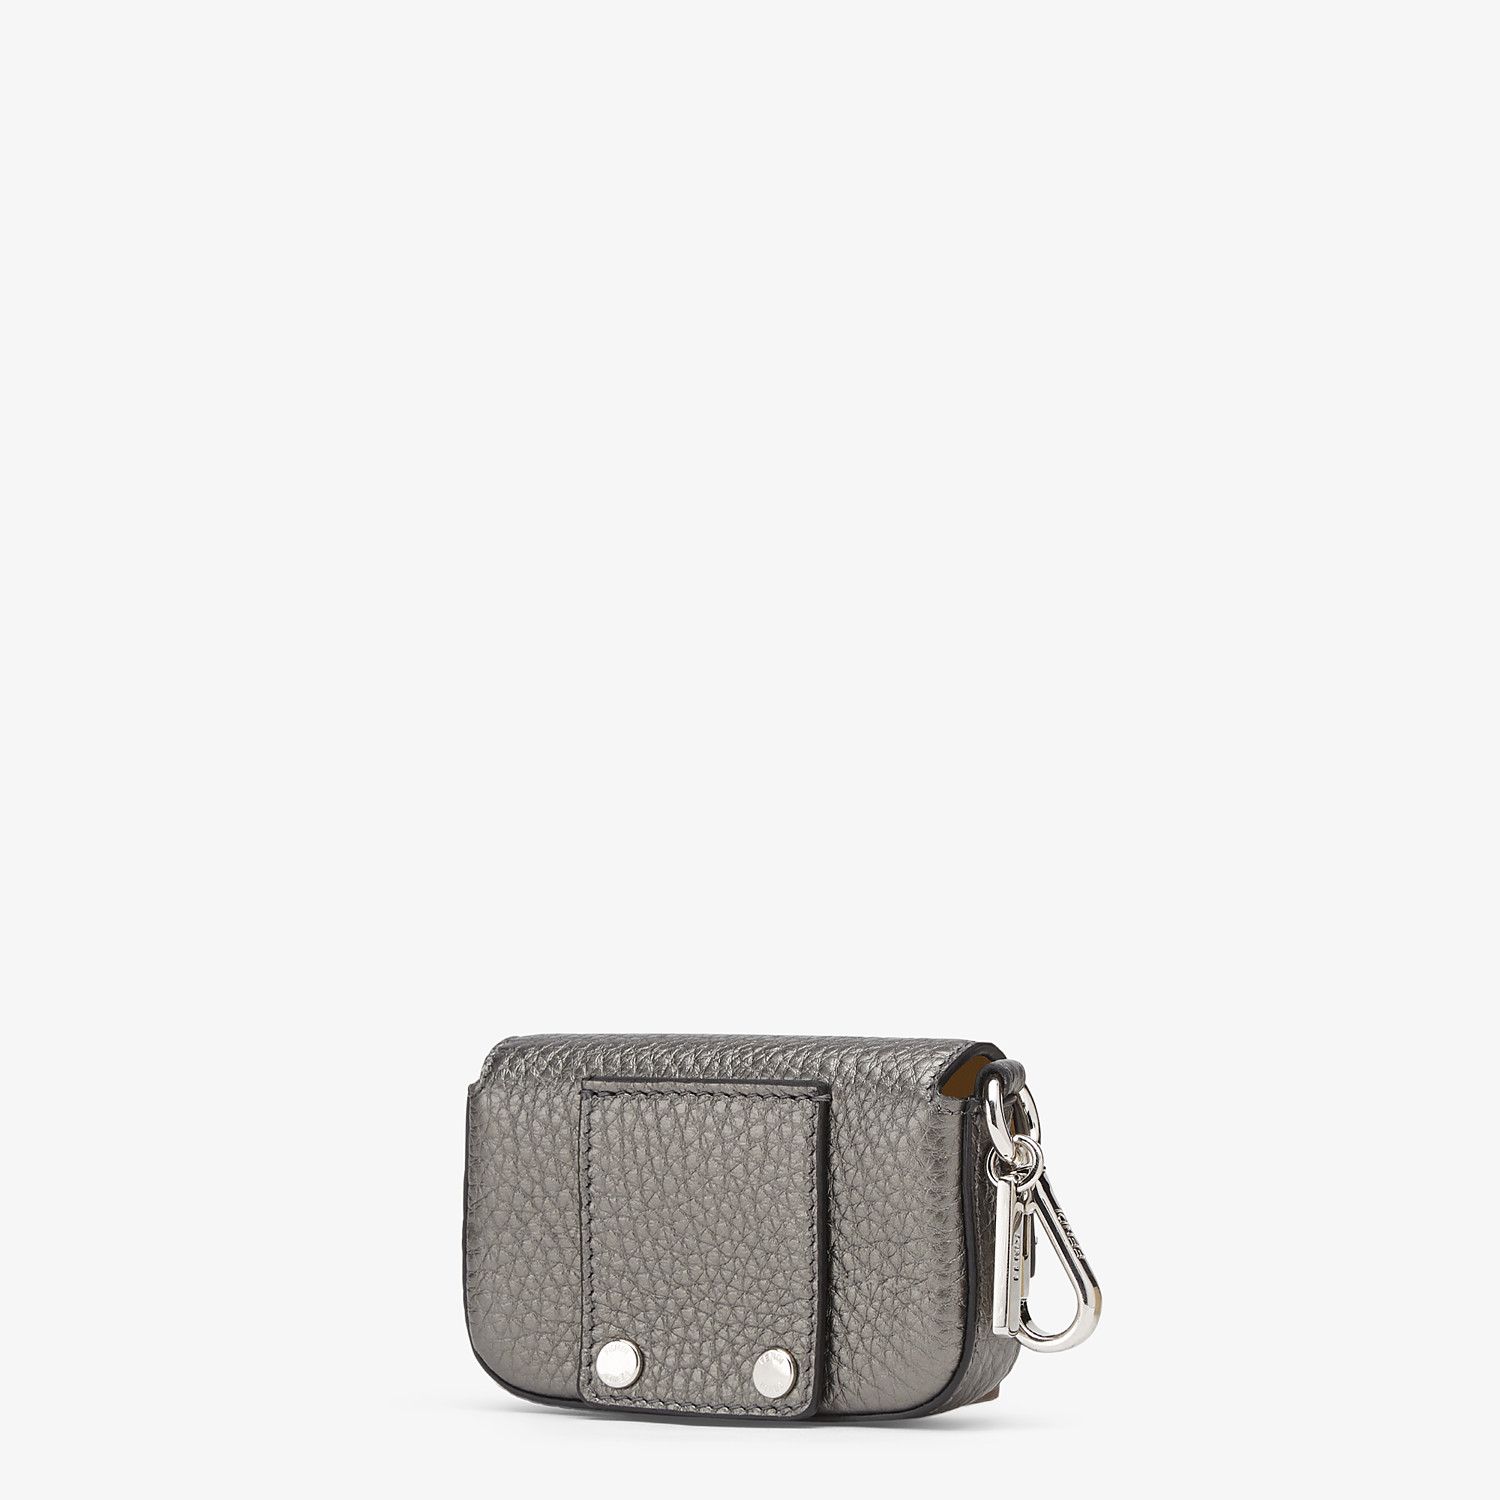 FENDI NANO BAGUETTE CHARM - Gray leather charm - view 2 detail